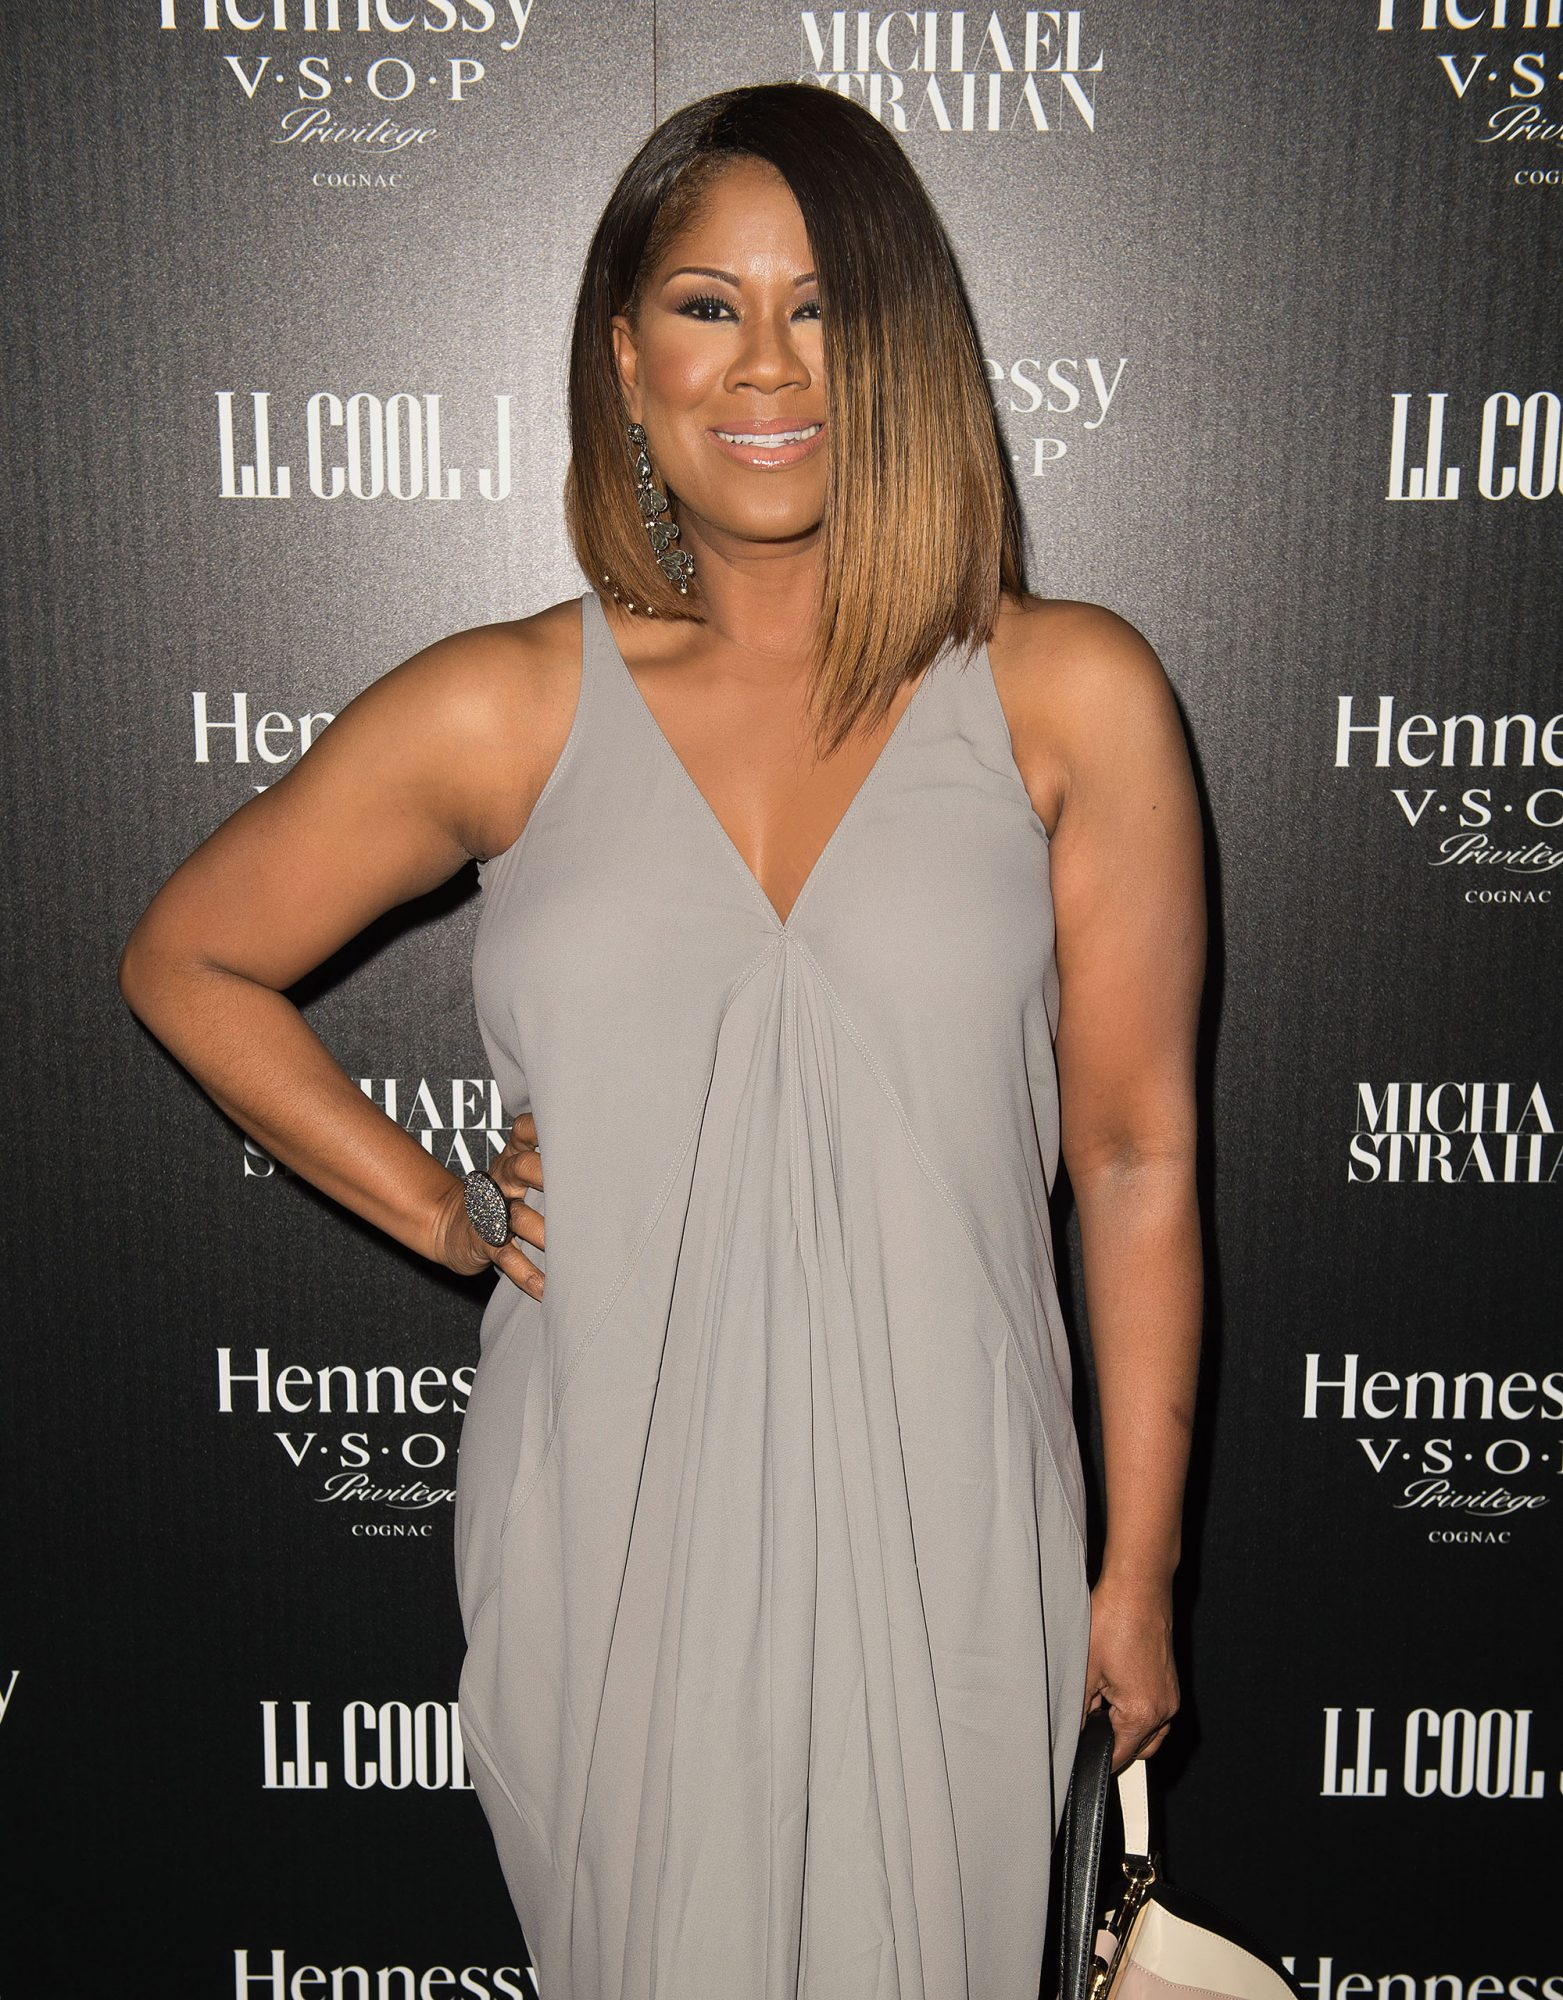 Hennessy Toasts Achievements In Music With GRAMMY Awards Host LL Cool J And Michael Strahan